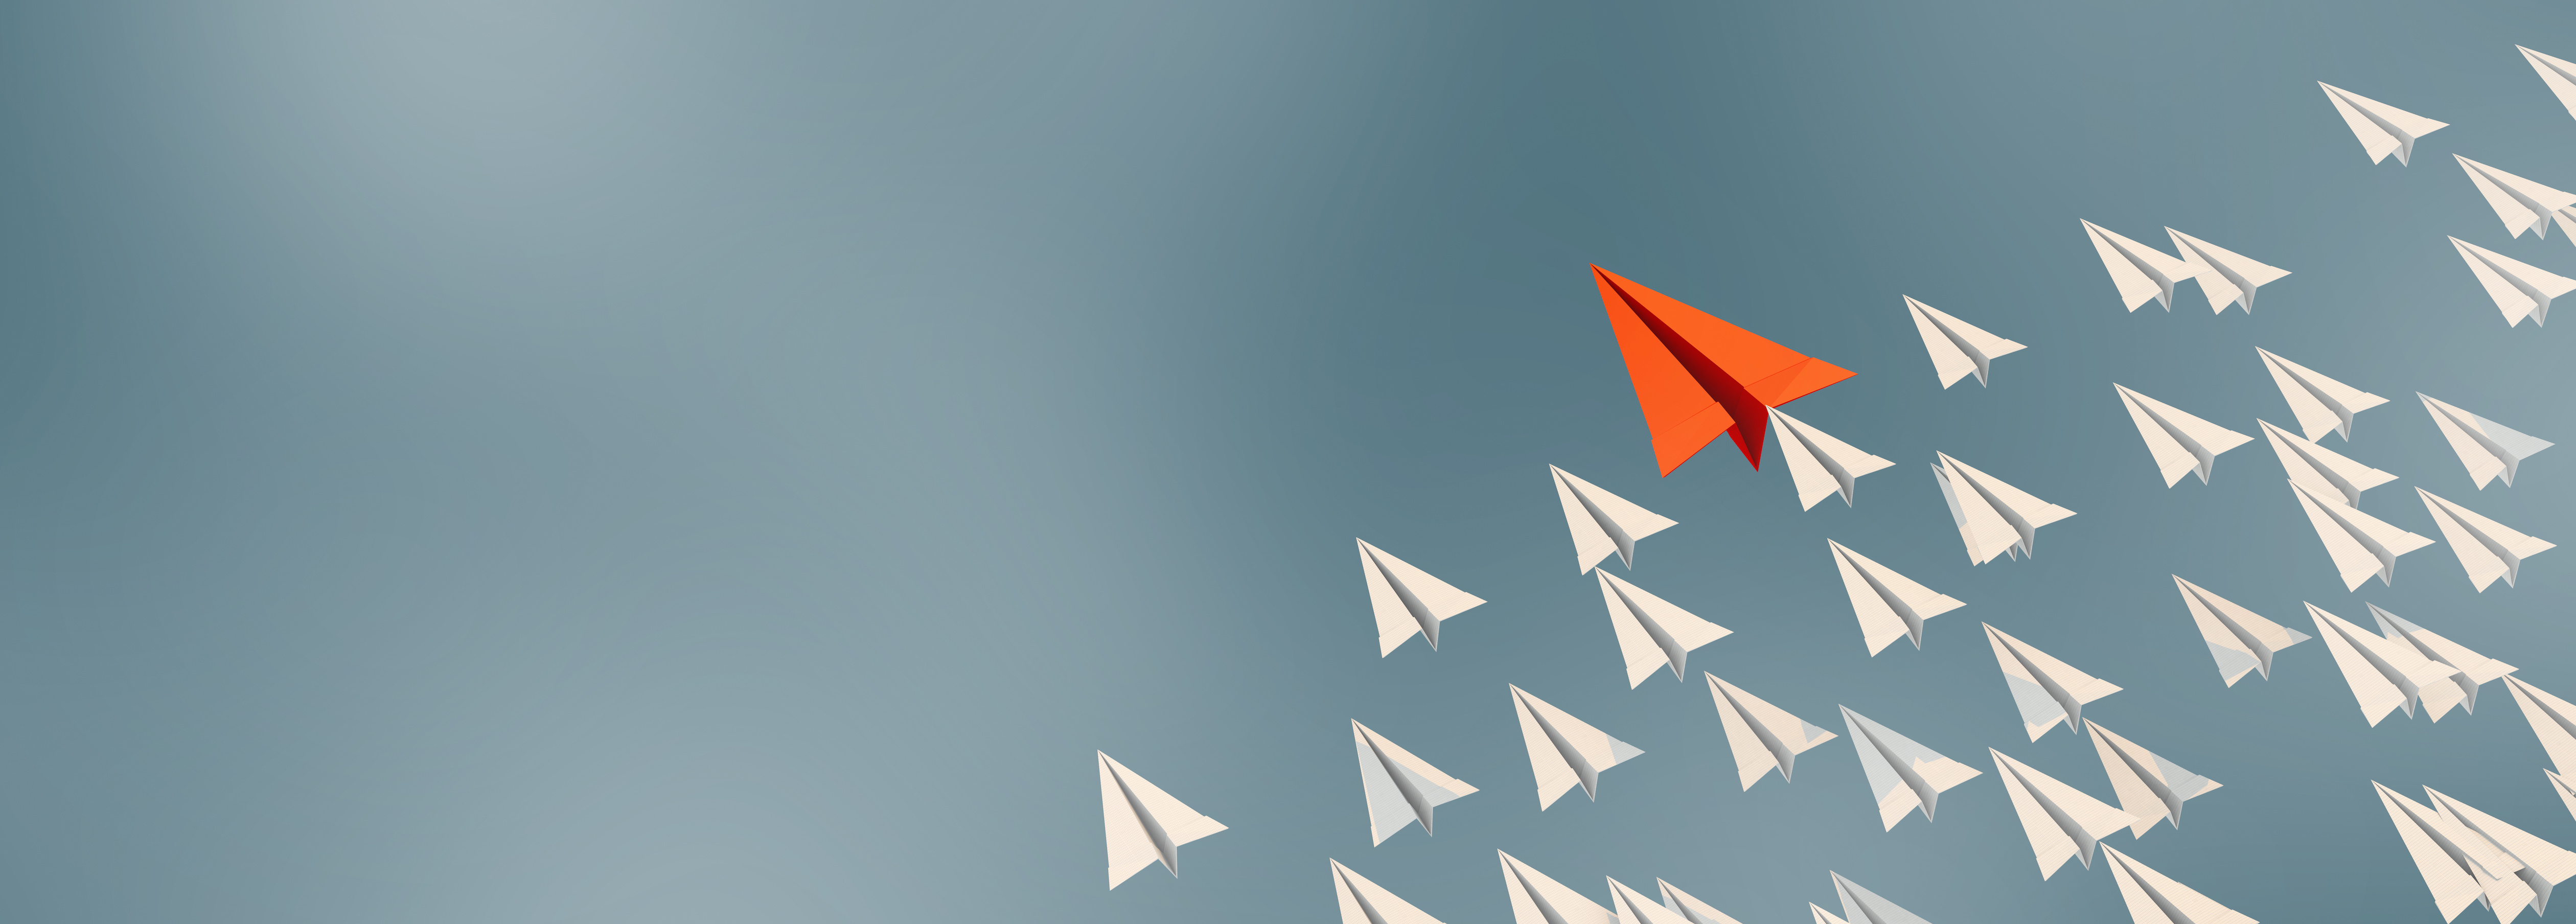 Knowing When Your Startup Should Go All-In On Business Development